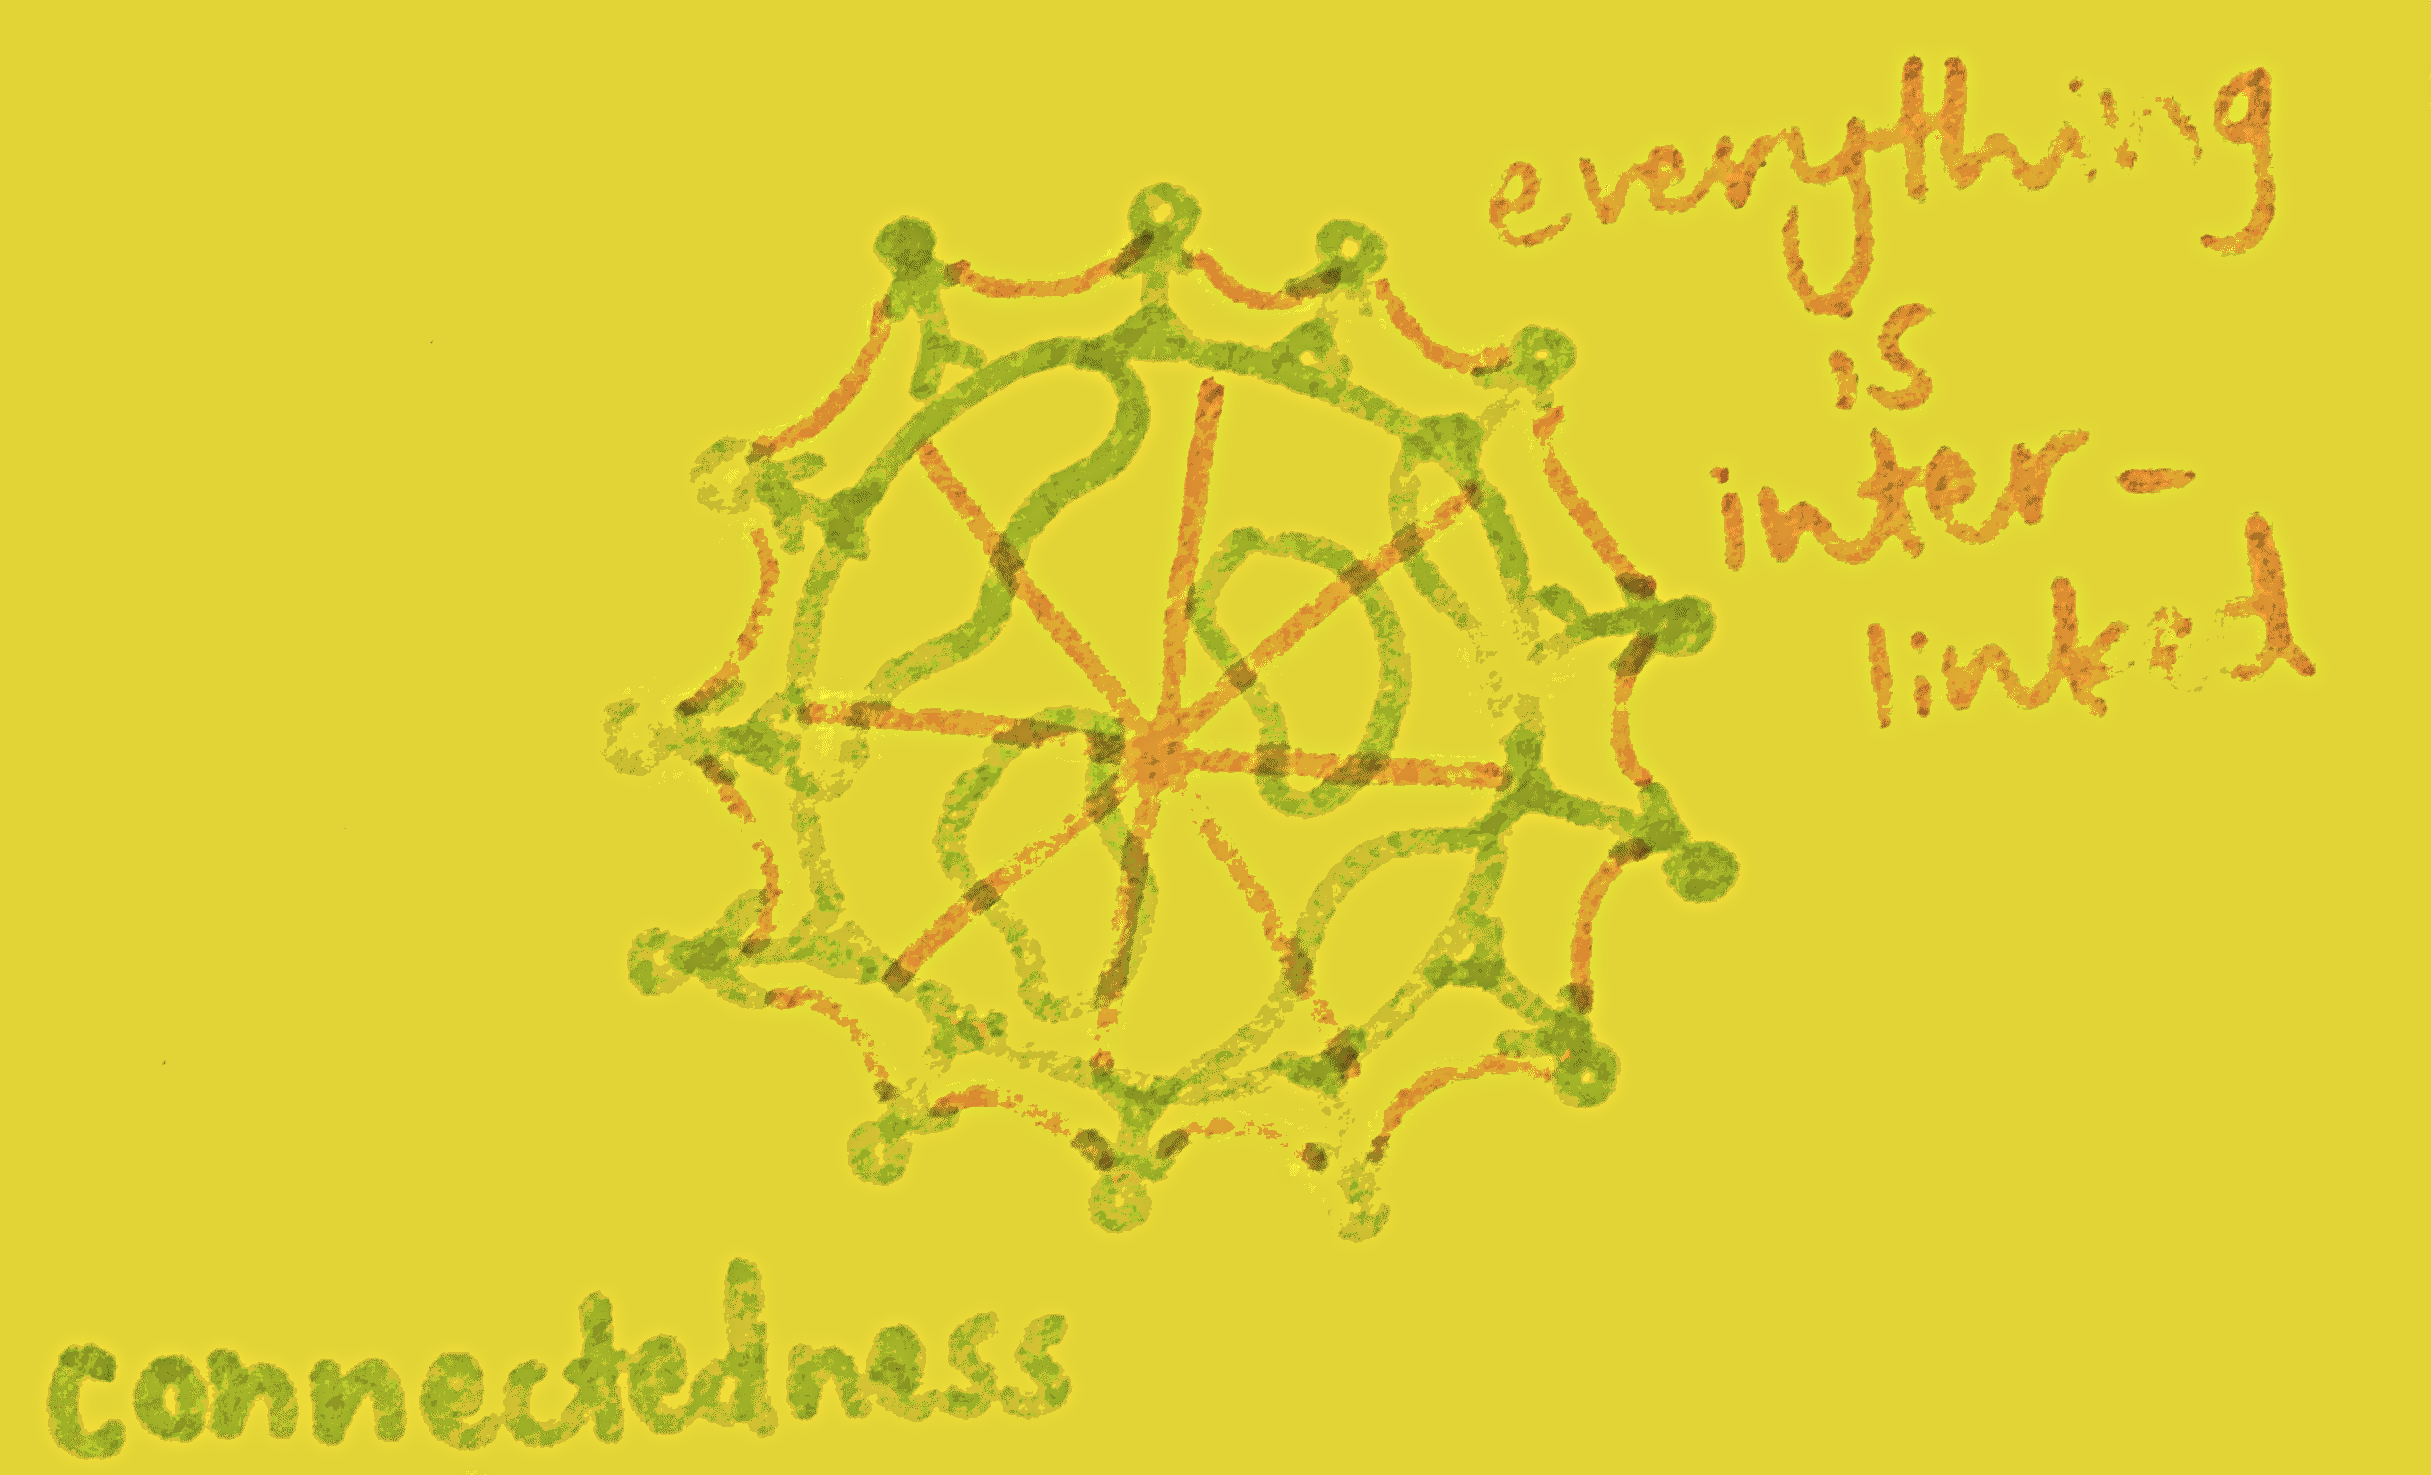 Connectedness StrengthsFinder Singapore Everything Is Interlinked